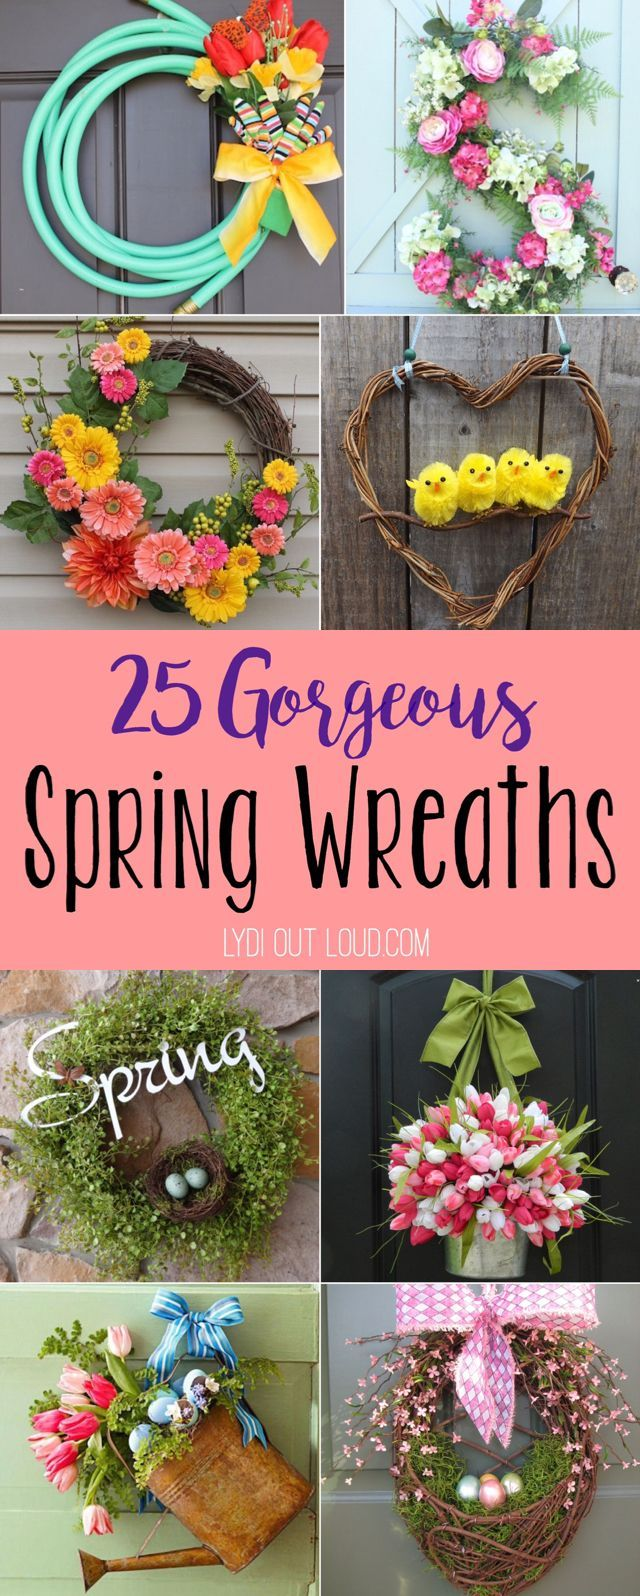 25 gorgeous spring wreaths! I am so excited for warm spring weather cute spring front porch decor.